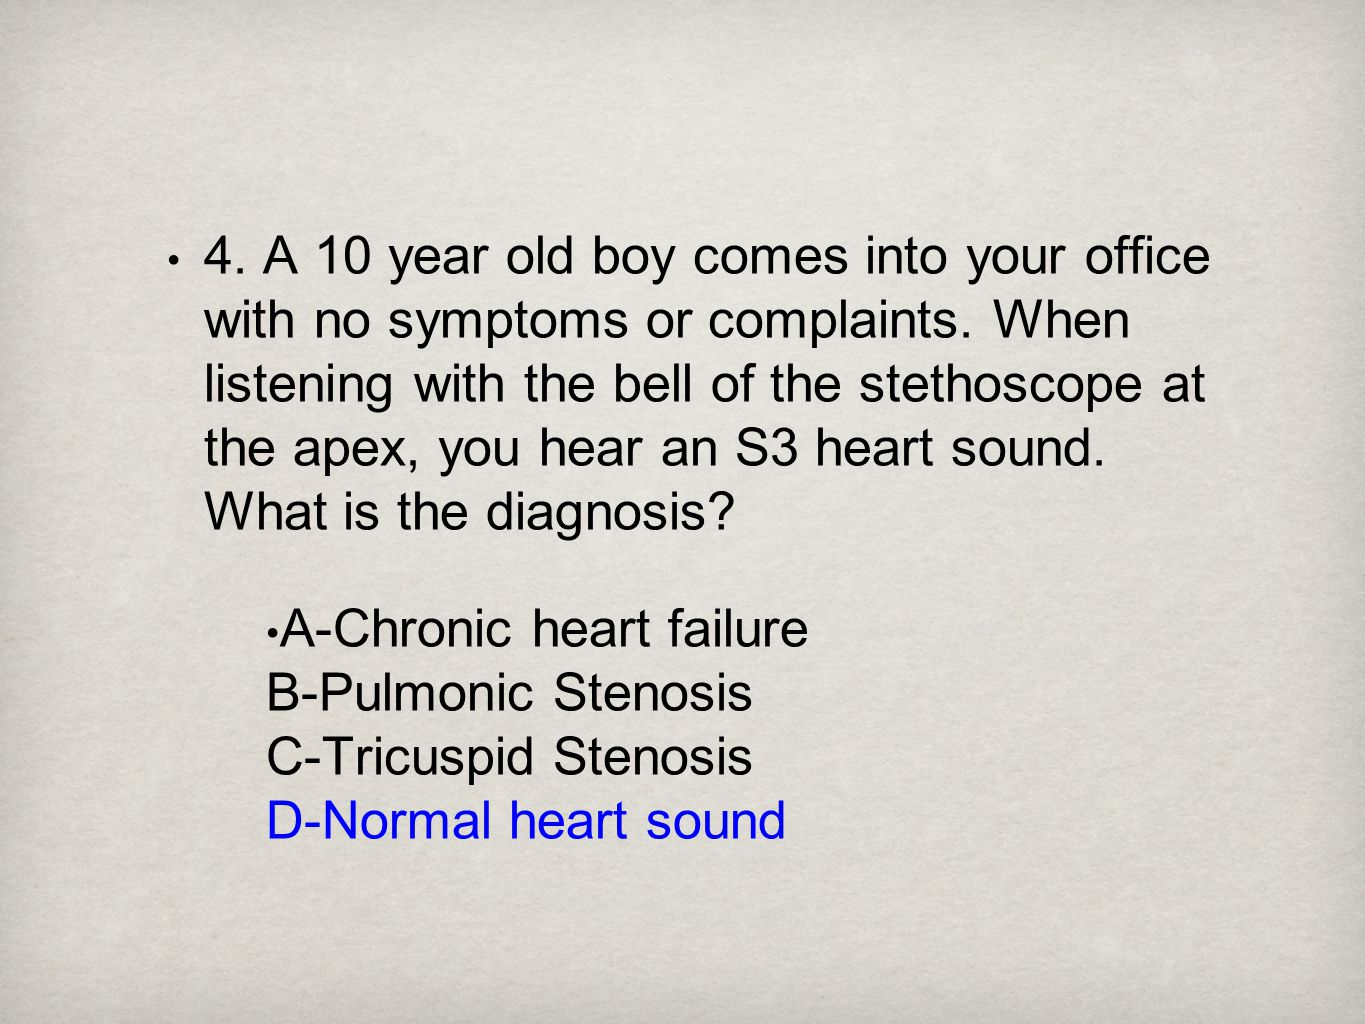 4. A 10 year old boy comes into your office with no symptoms or complaints. When listening with the bell of the stethoscope at the apex, you hear an S